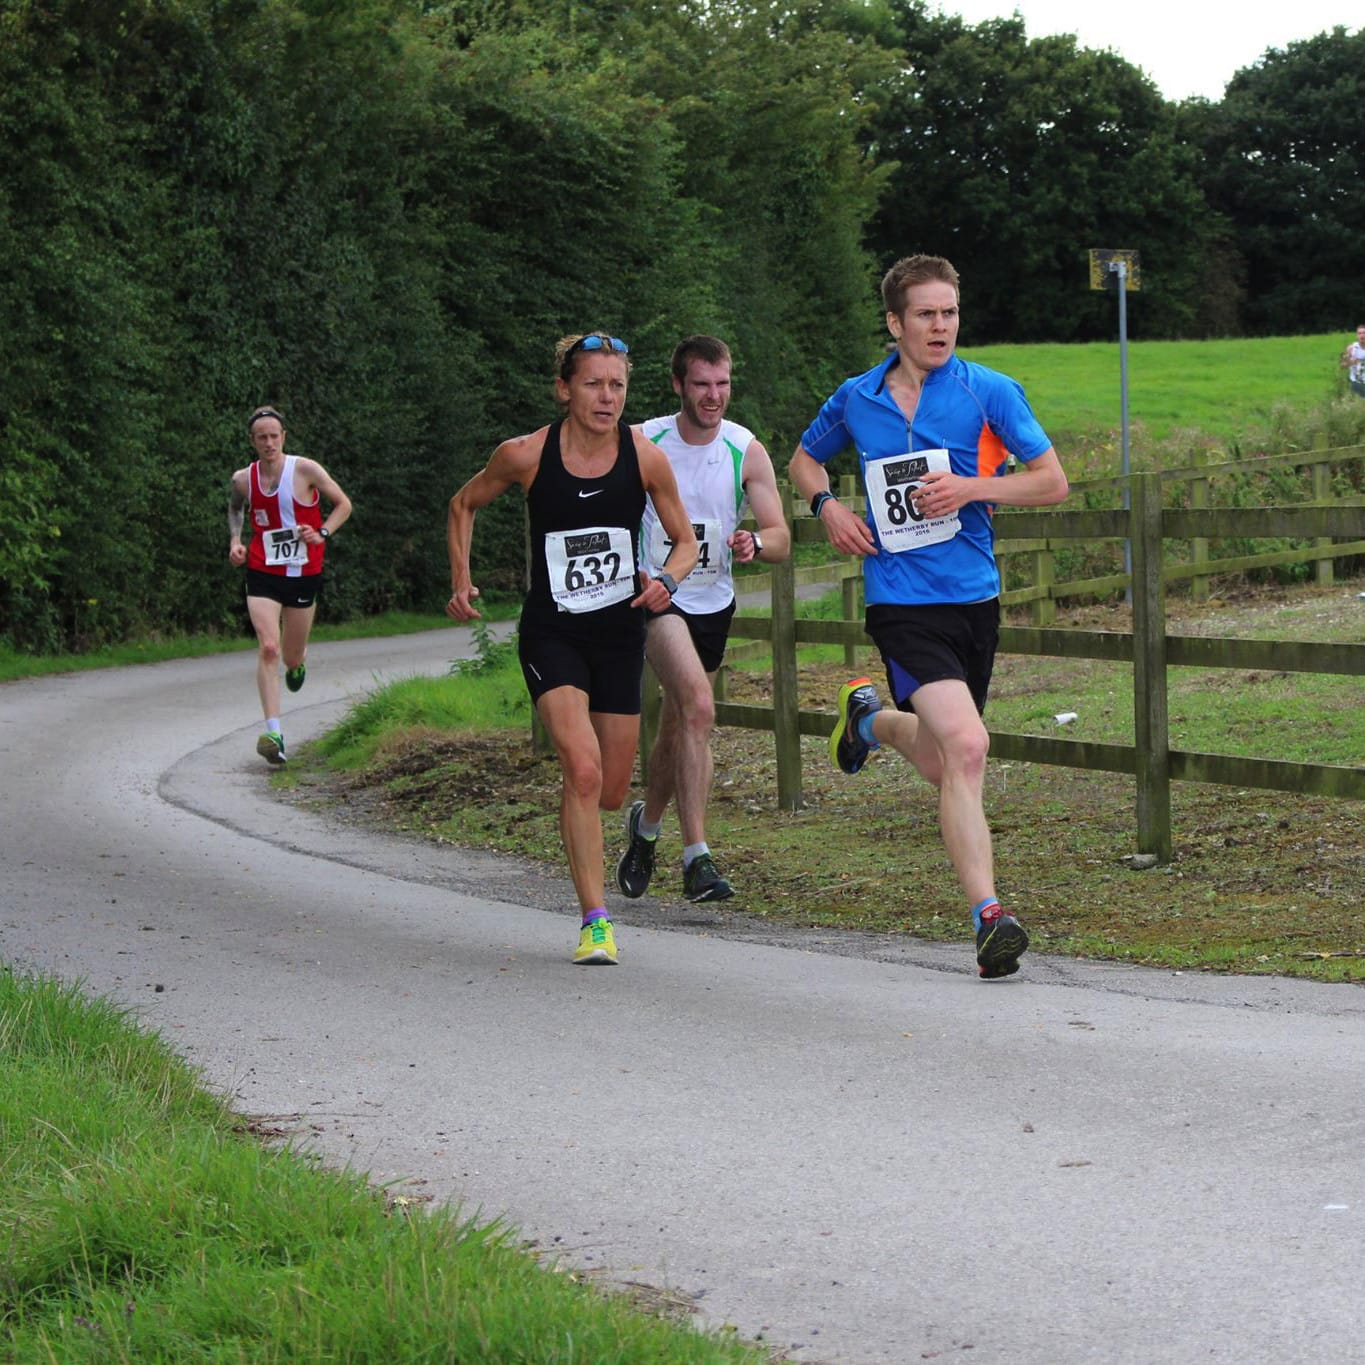 Race Report: Wetherby 10k